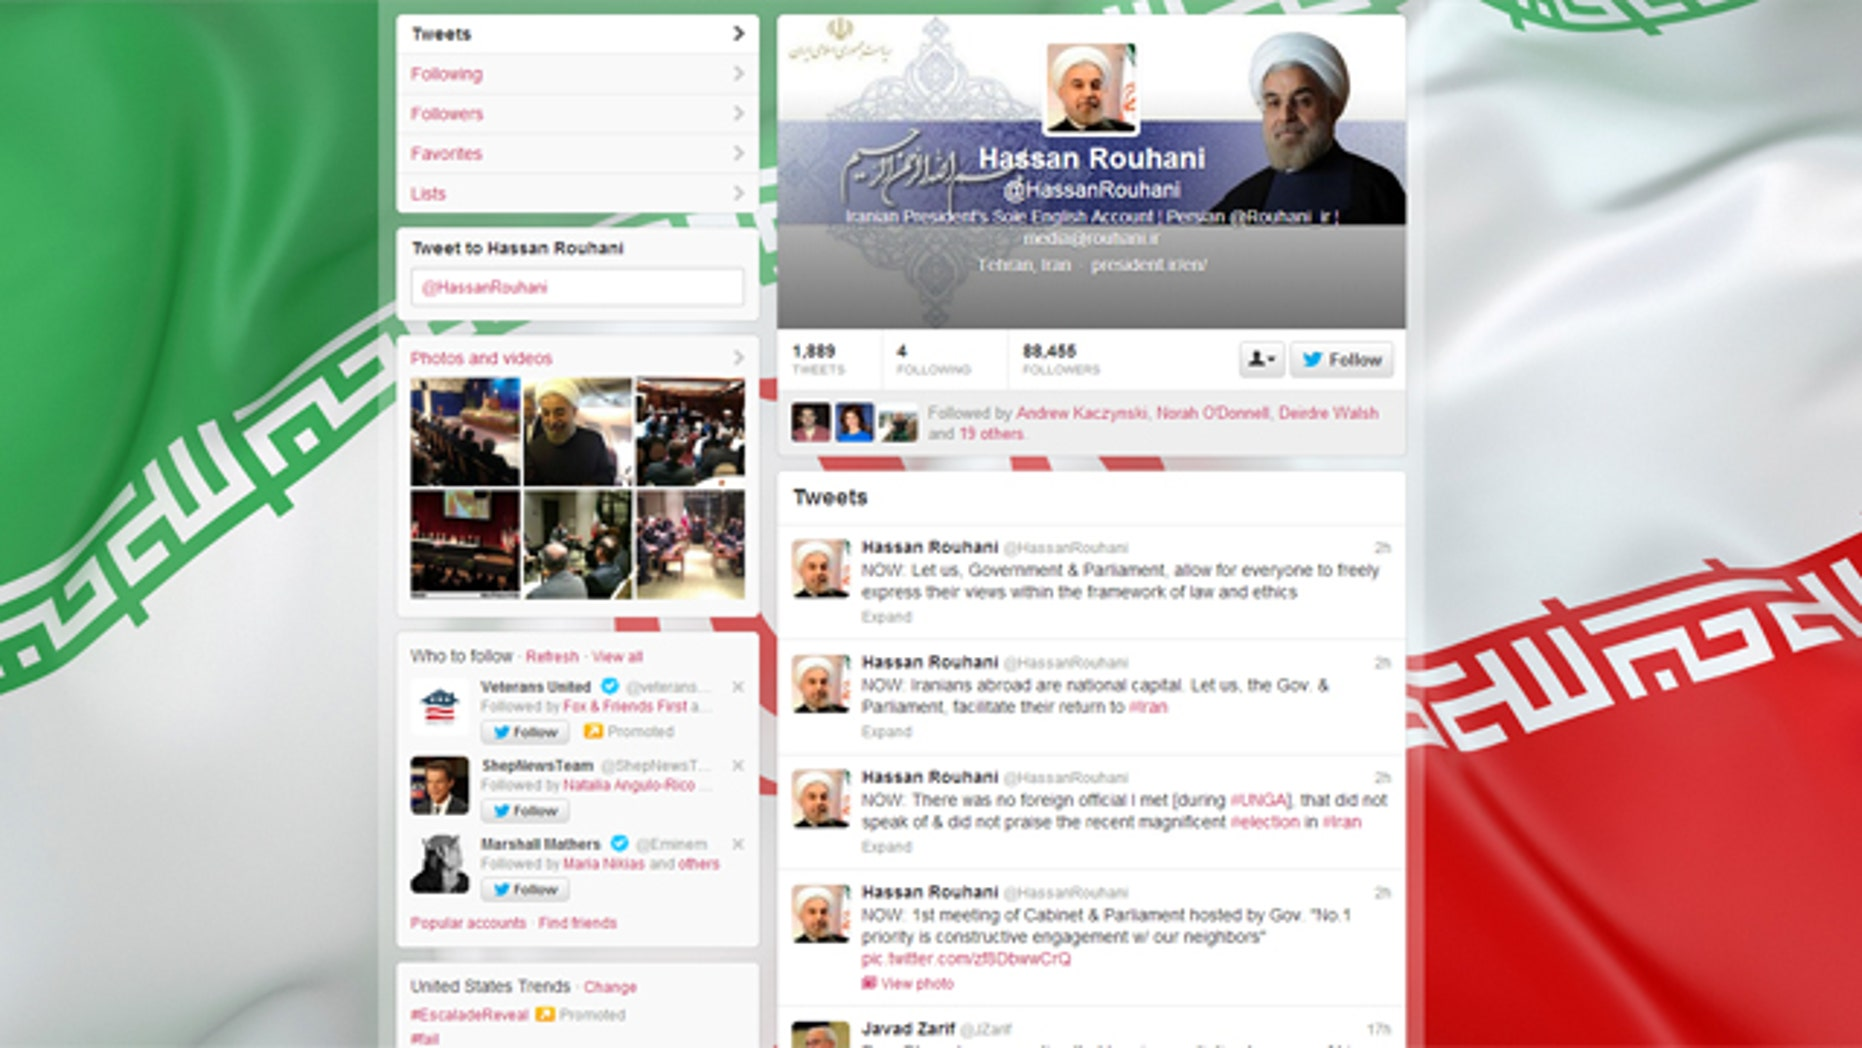 Oct. 1, 2013: The Twitter feed of Iranian President Hassan Rouhani.